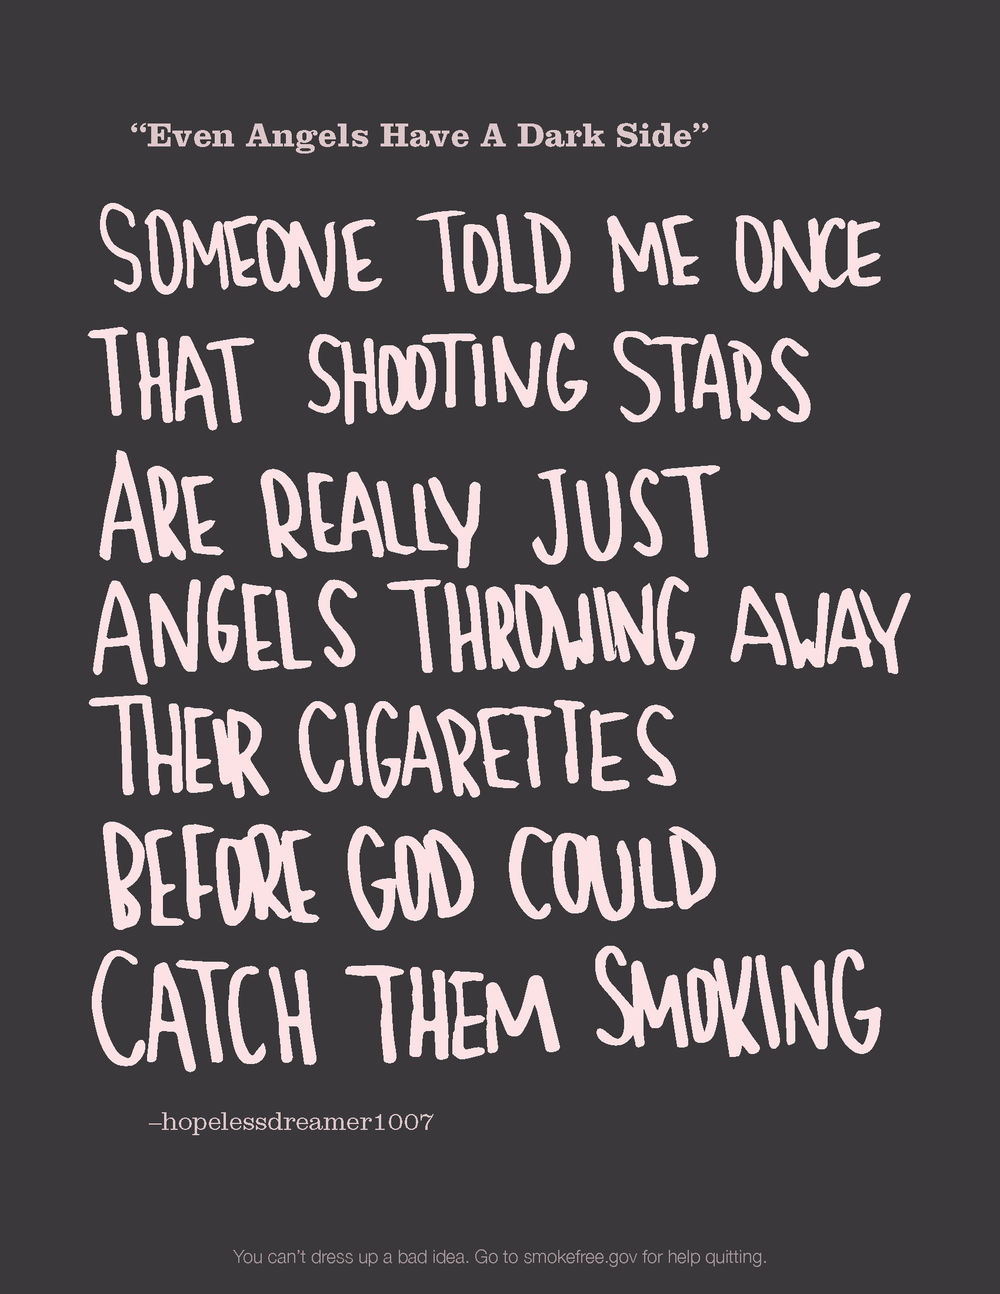 angels throwing cigs.png